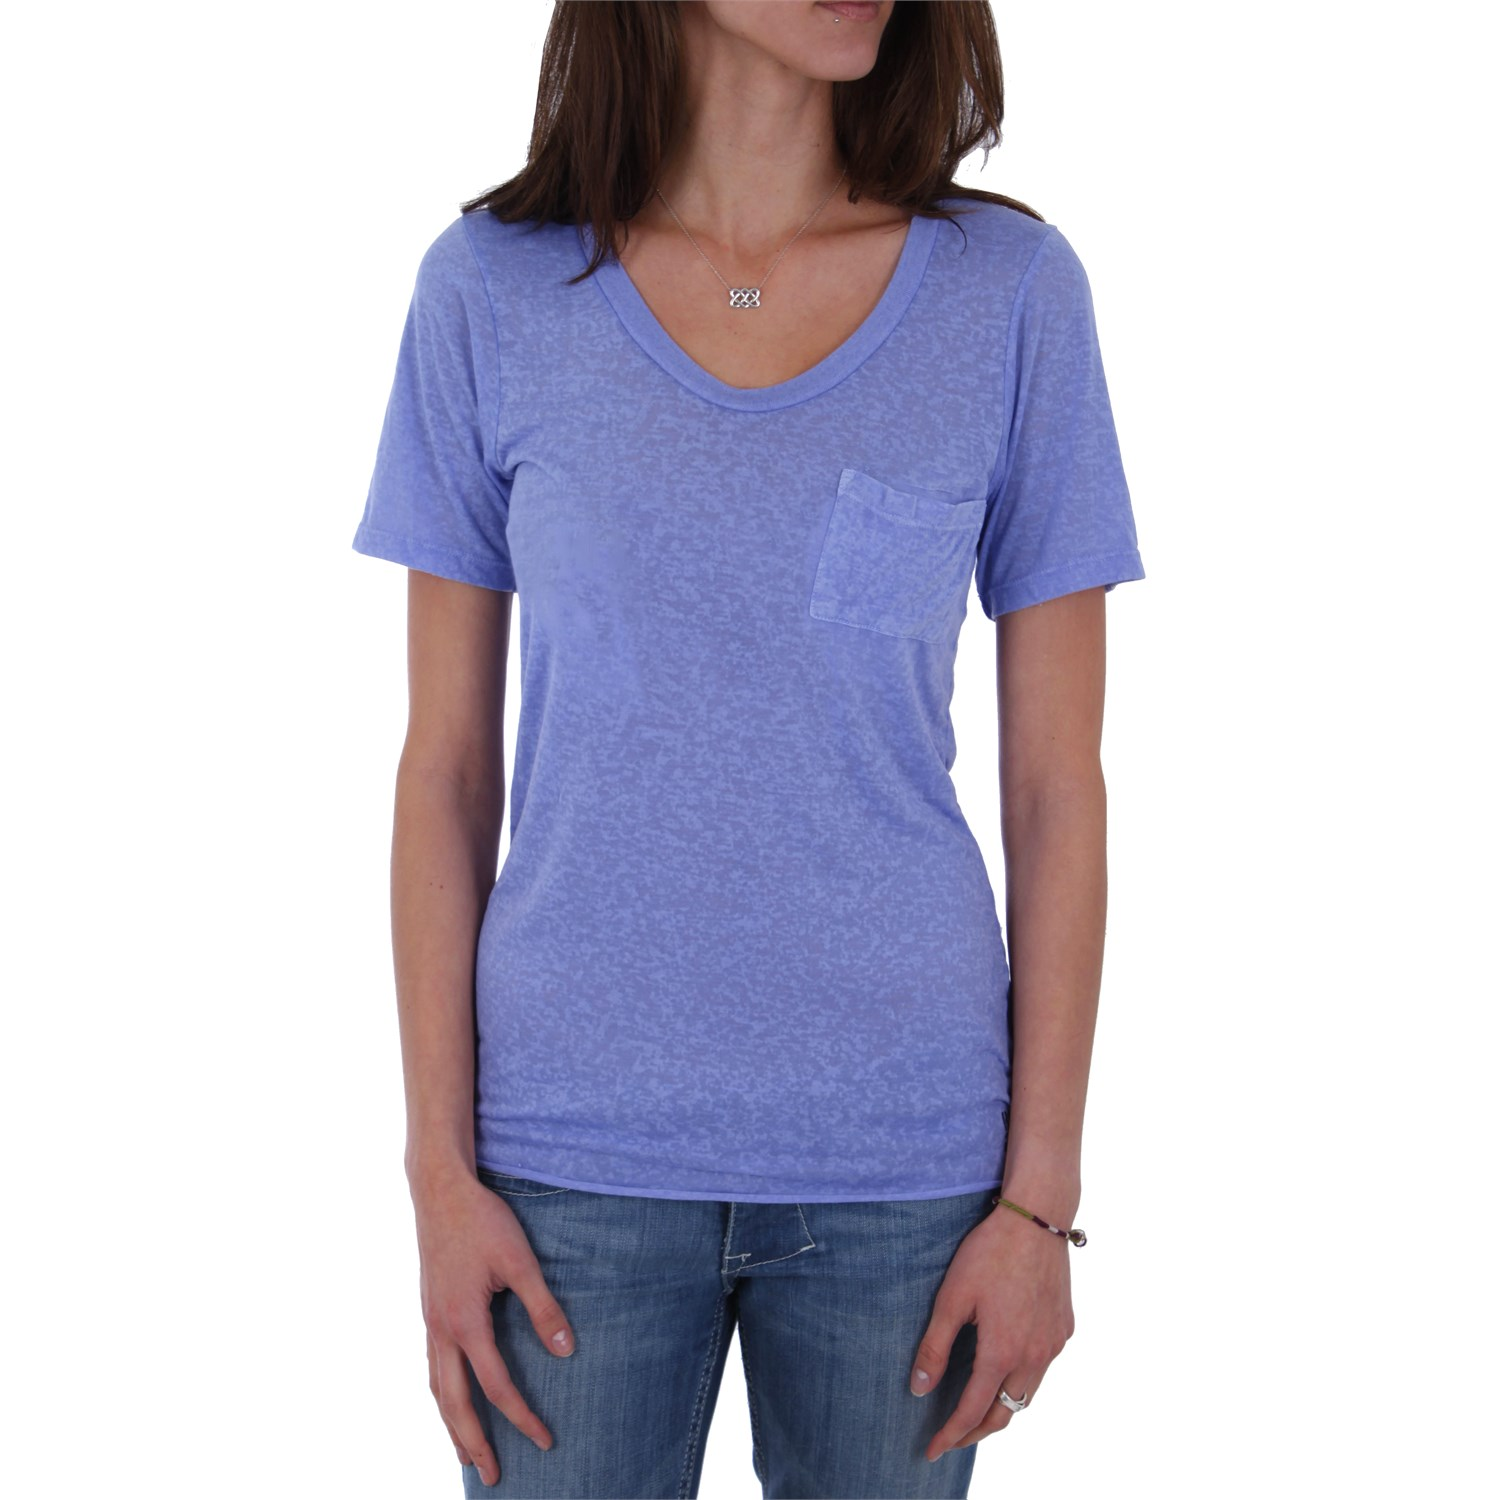 Billabong corporal pocket t shirt women 39 s evo outlet for Pocket tee shirts for womens